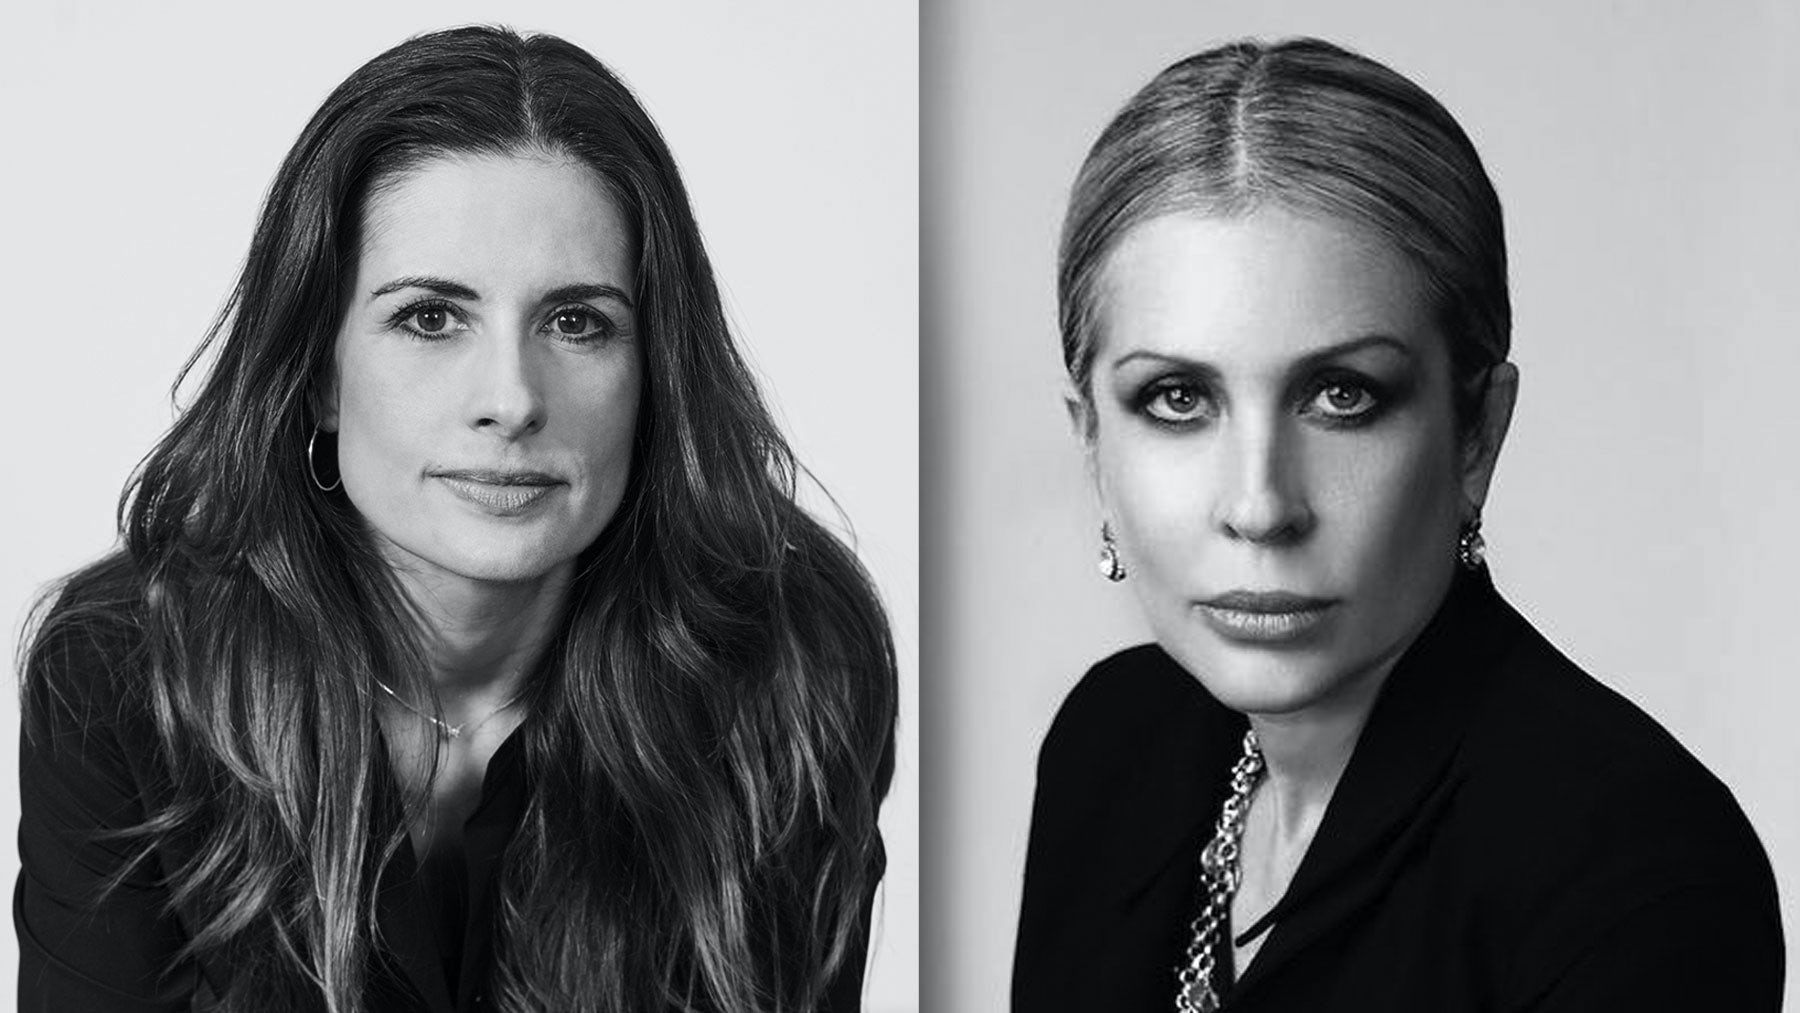 Livia Firth and Carmen Busquets will co-host the summit alongside Andrea Somma   Source: Courtesy